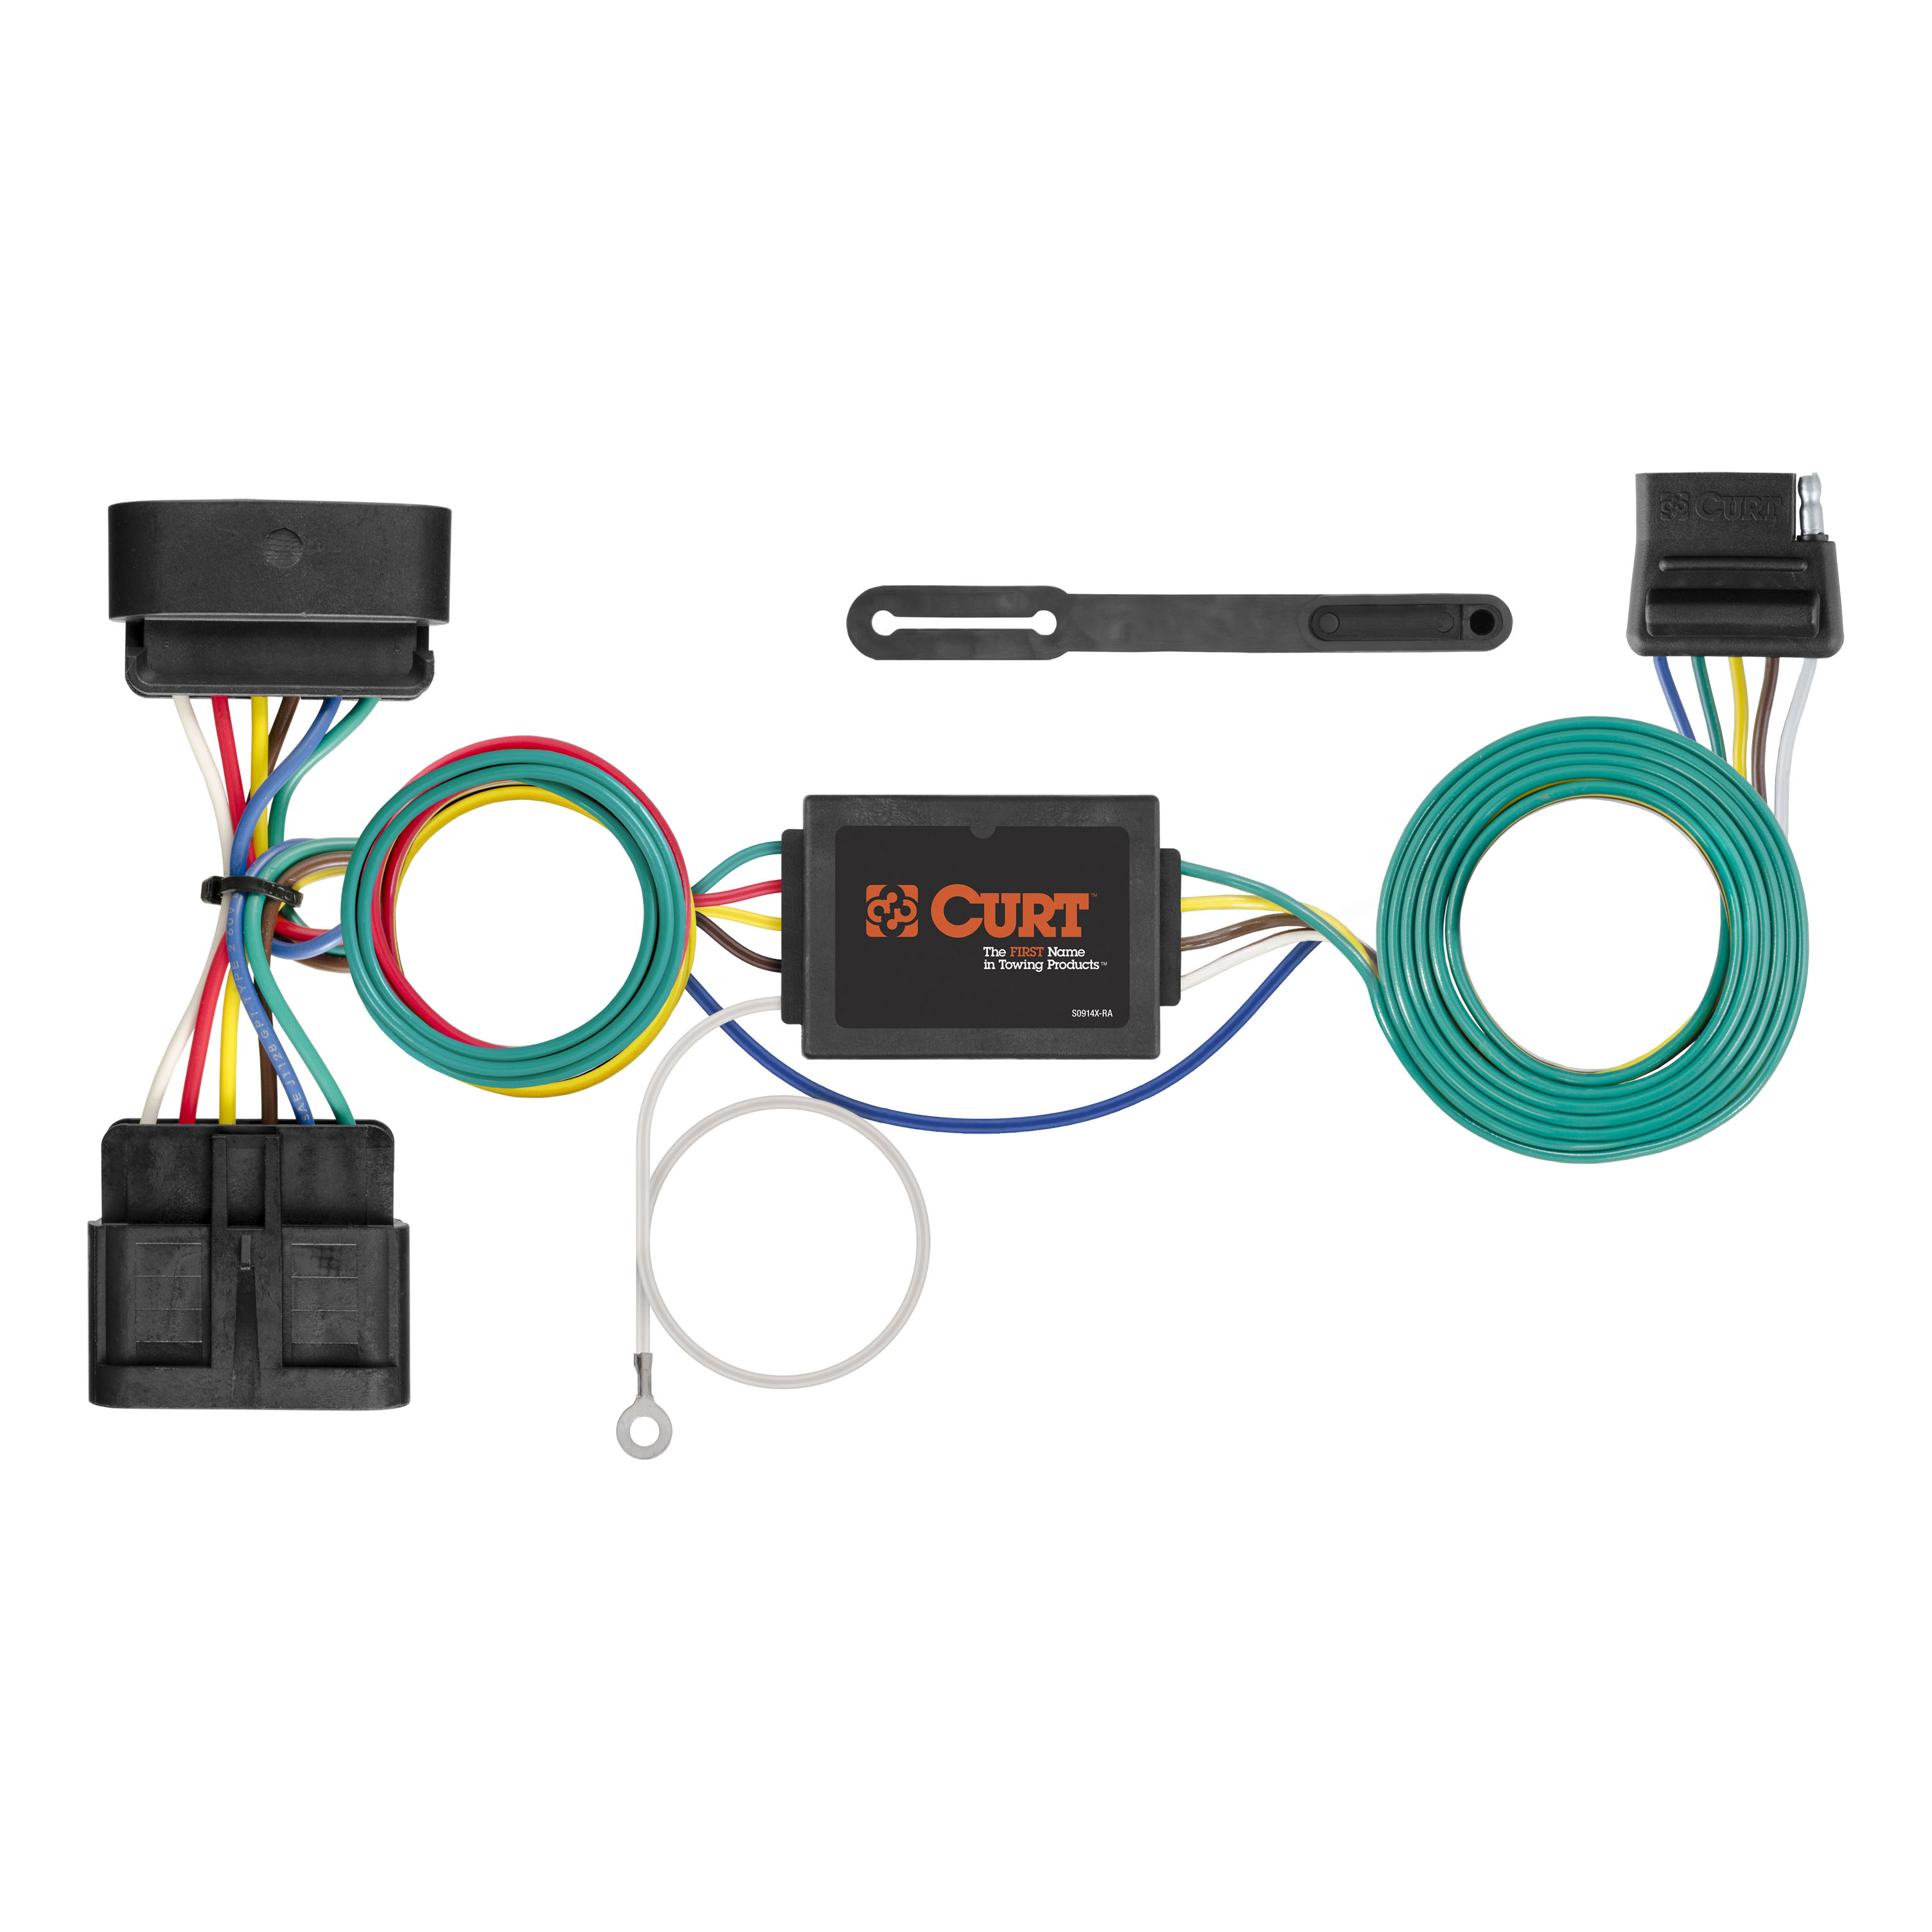 2006 gmc canyon wiring diagram 2006 image wiring 2007 gmc canyon trailer wiring harness wiring diagram and hernes on 2006 gmc canyon wiring diagram